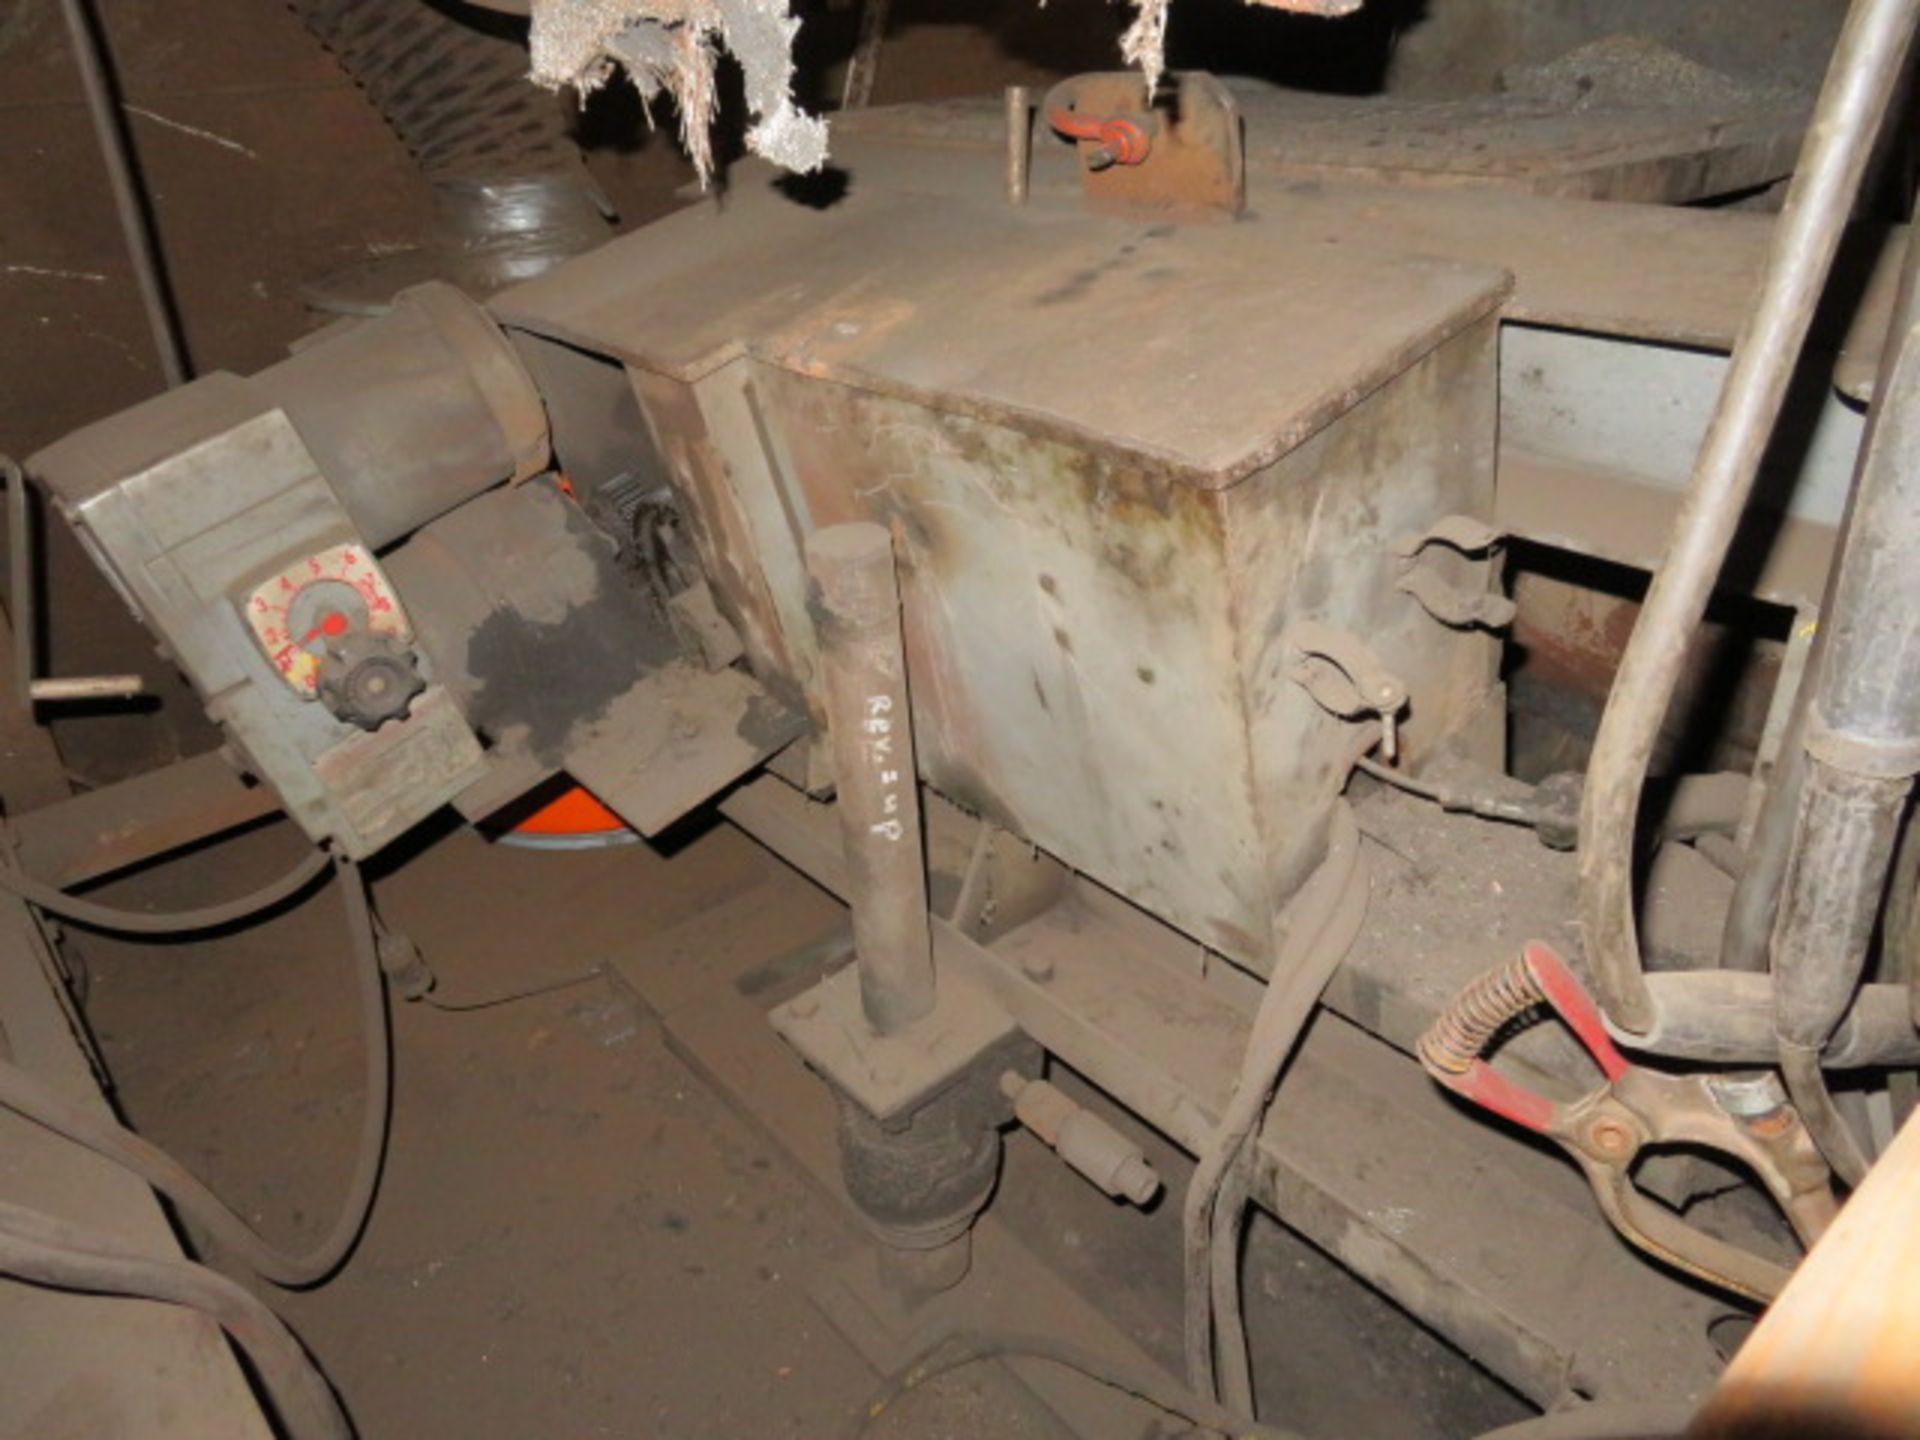 Lot 48 - SUB-ARC WELDING UNIT W/VARIABLE SPEED ROTATING UNIT, MOBILE GANTRY FRAME, LINCOLN NA-3N AUTO WIRE